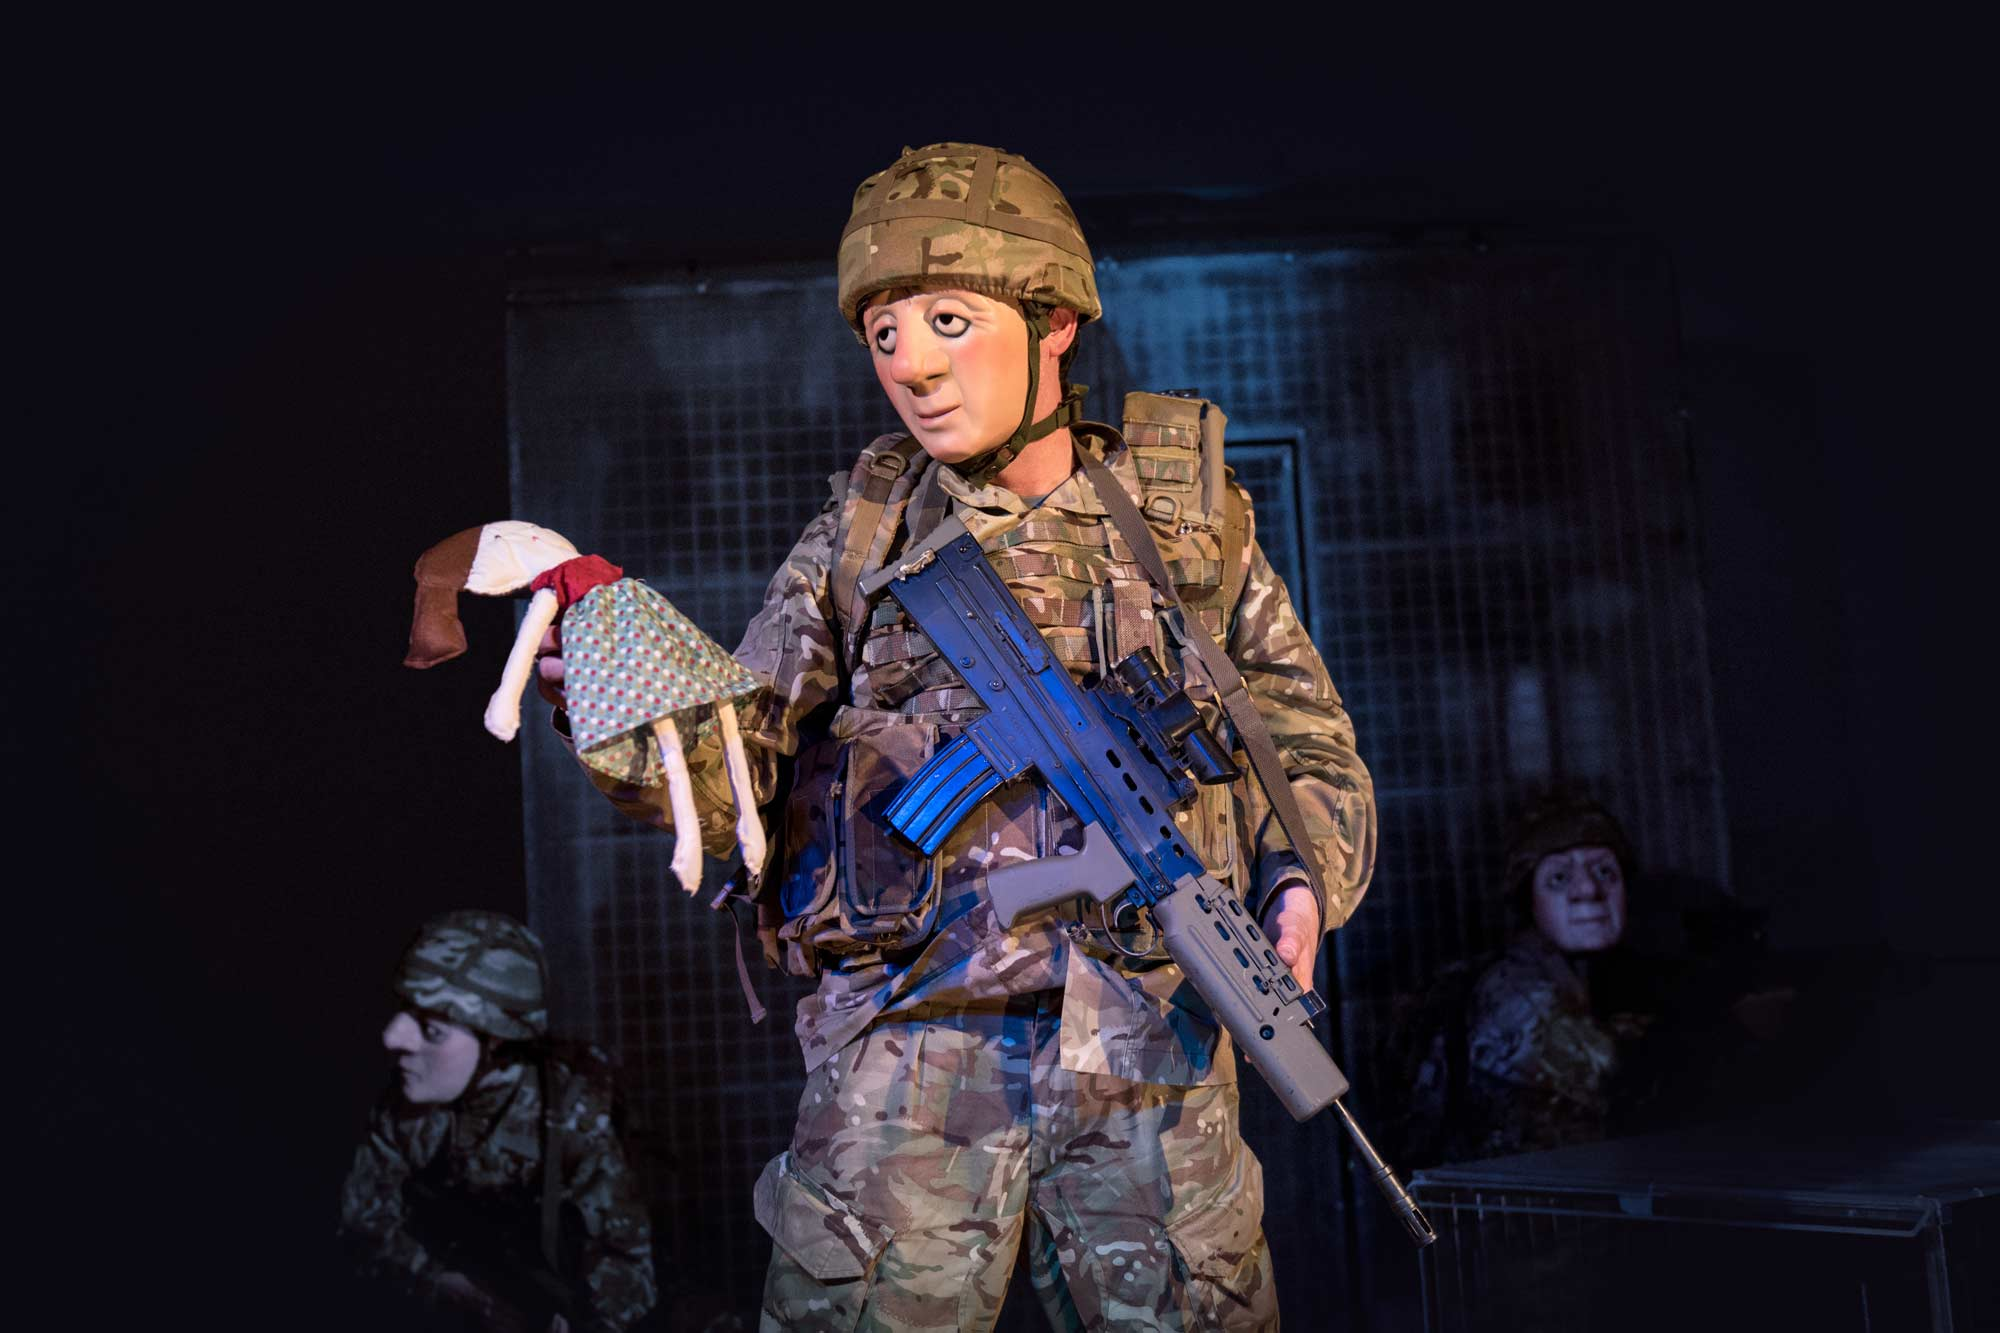 Soldier holds a rag doll